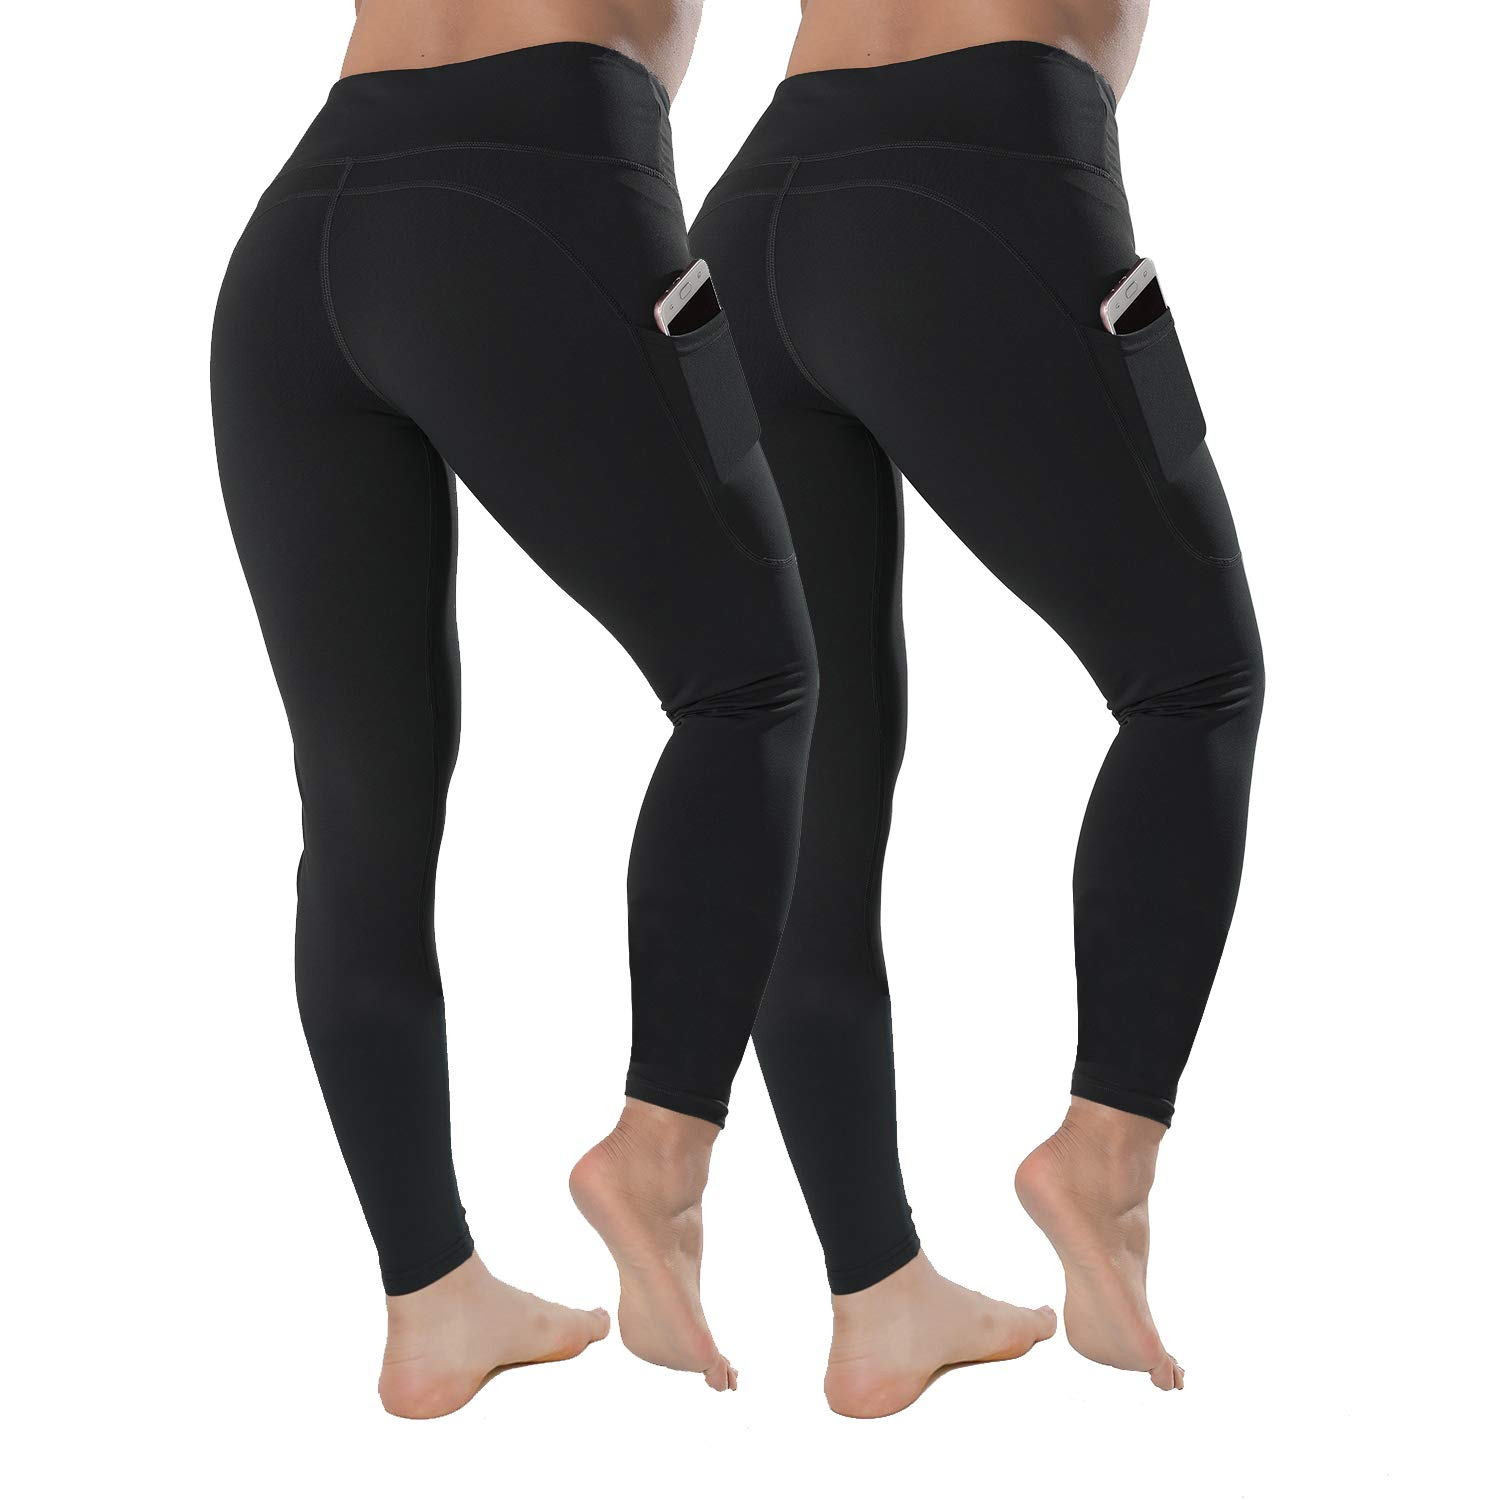 QYQ High Waisted Leggings with Pockets - Workout Leggings for Women Stretch Power Flex Yoga Pants - Full&Capri (Medium, Black 2 Pack) by QYQ